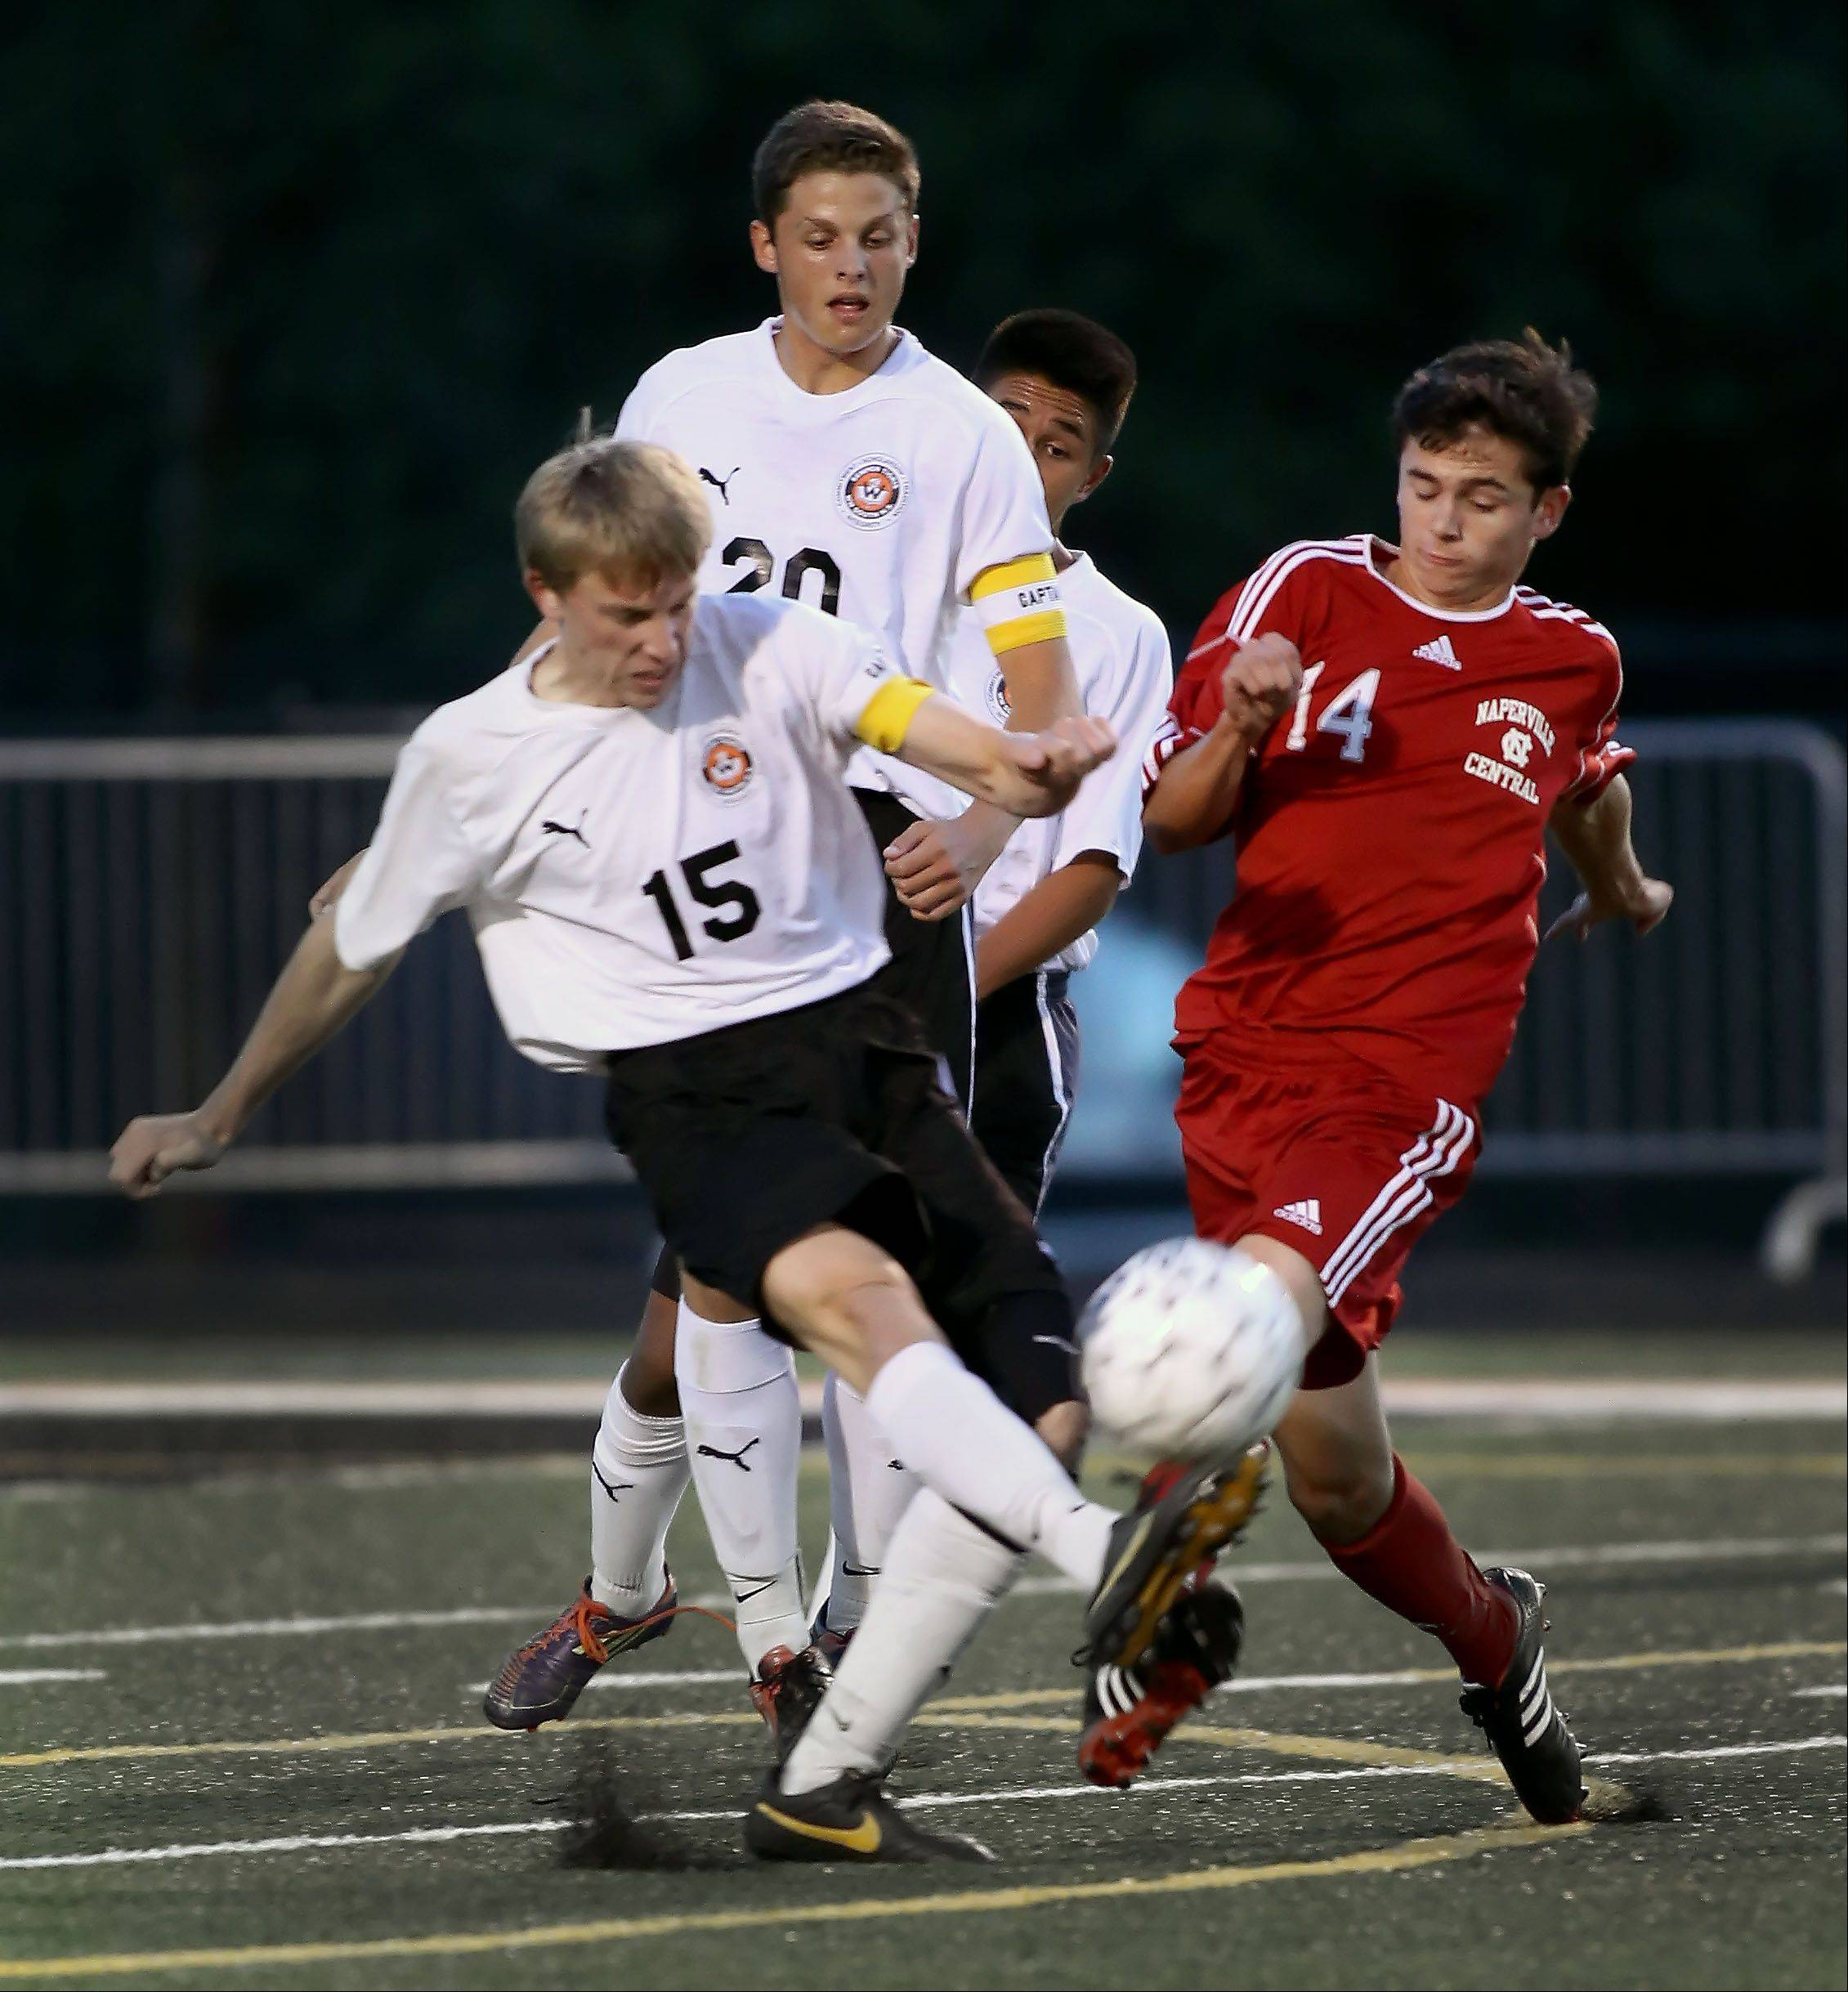 Joe Spera, left, of Wheaton Warrenville South and David Murphy, right, of Naperville Central battle for the ball during boys soccer on Tuesday in Wheaton.